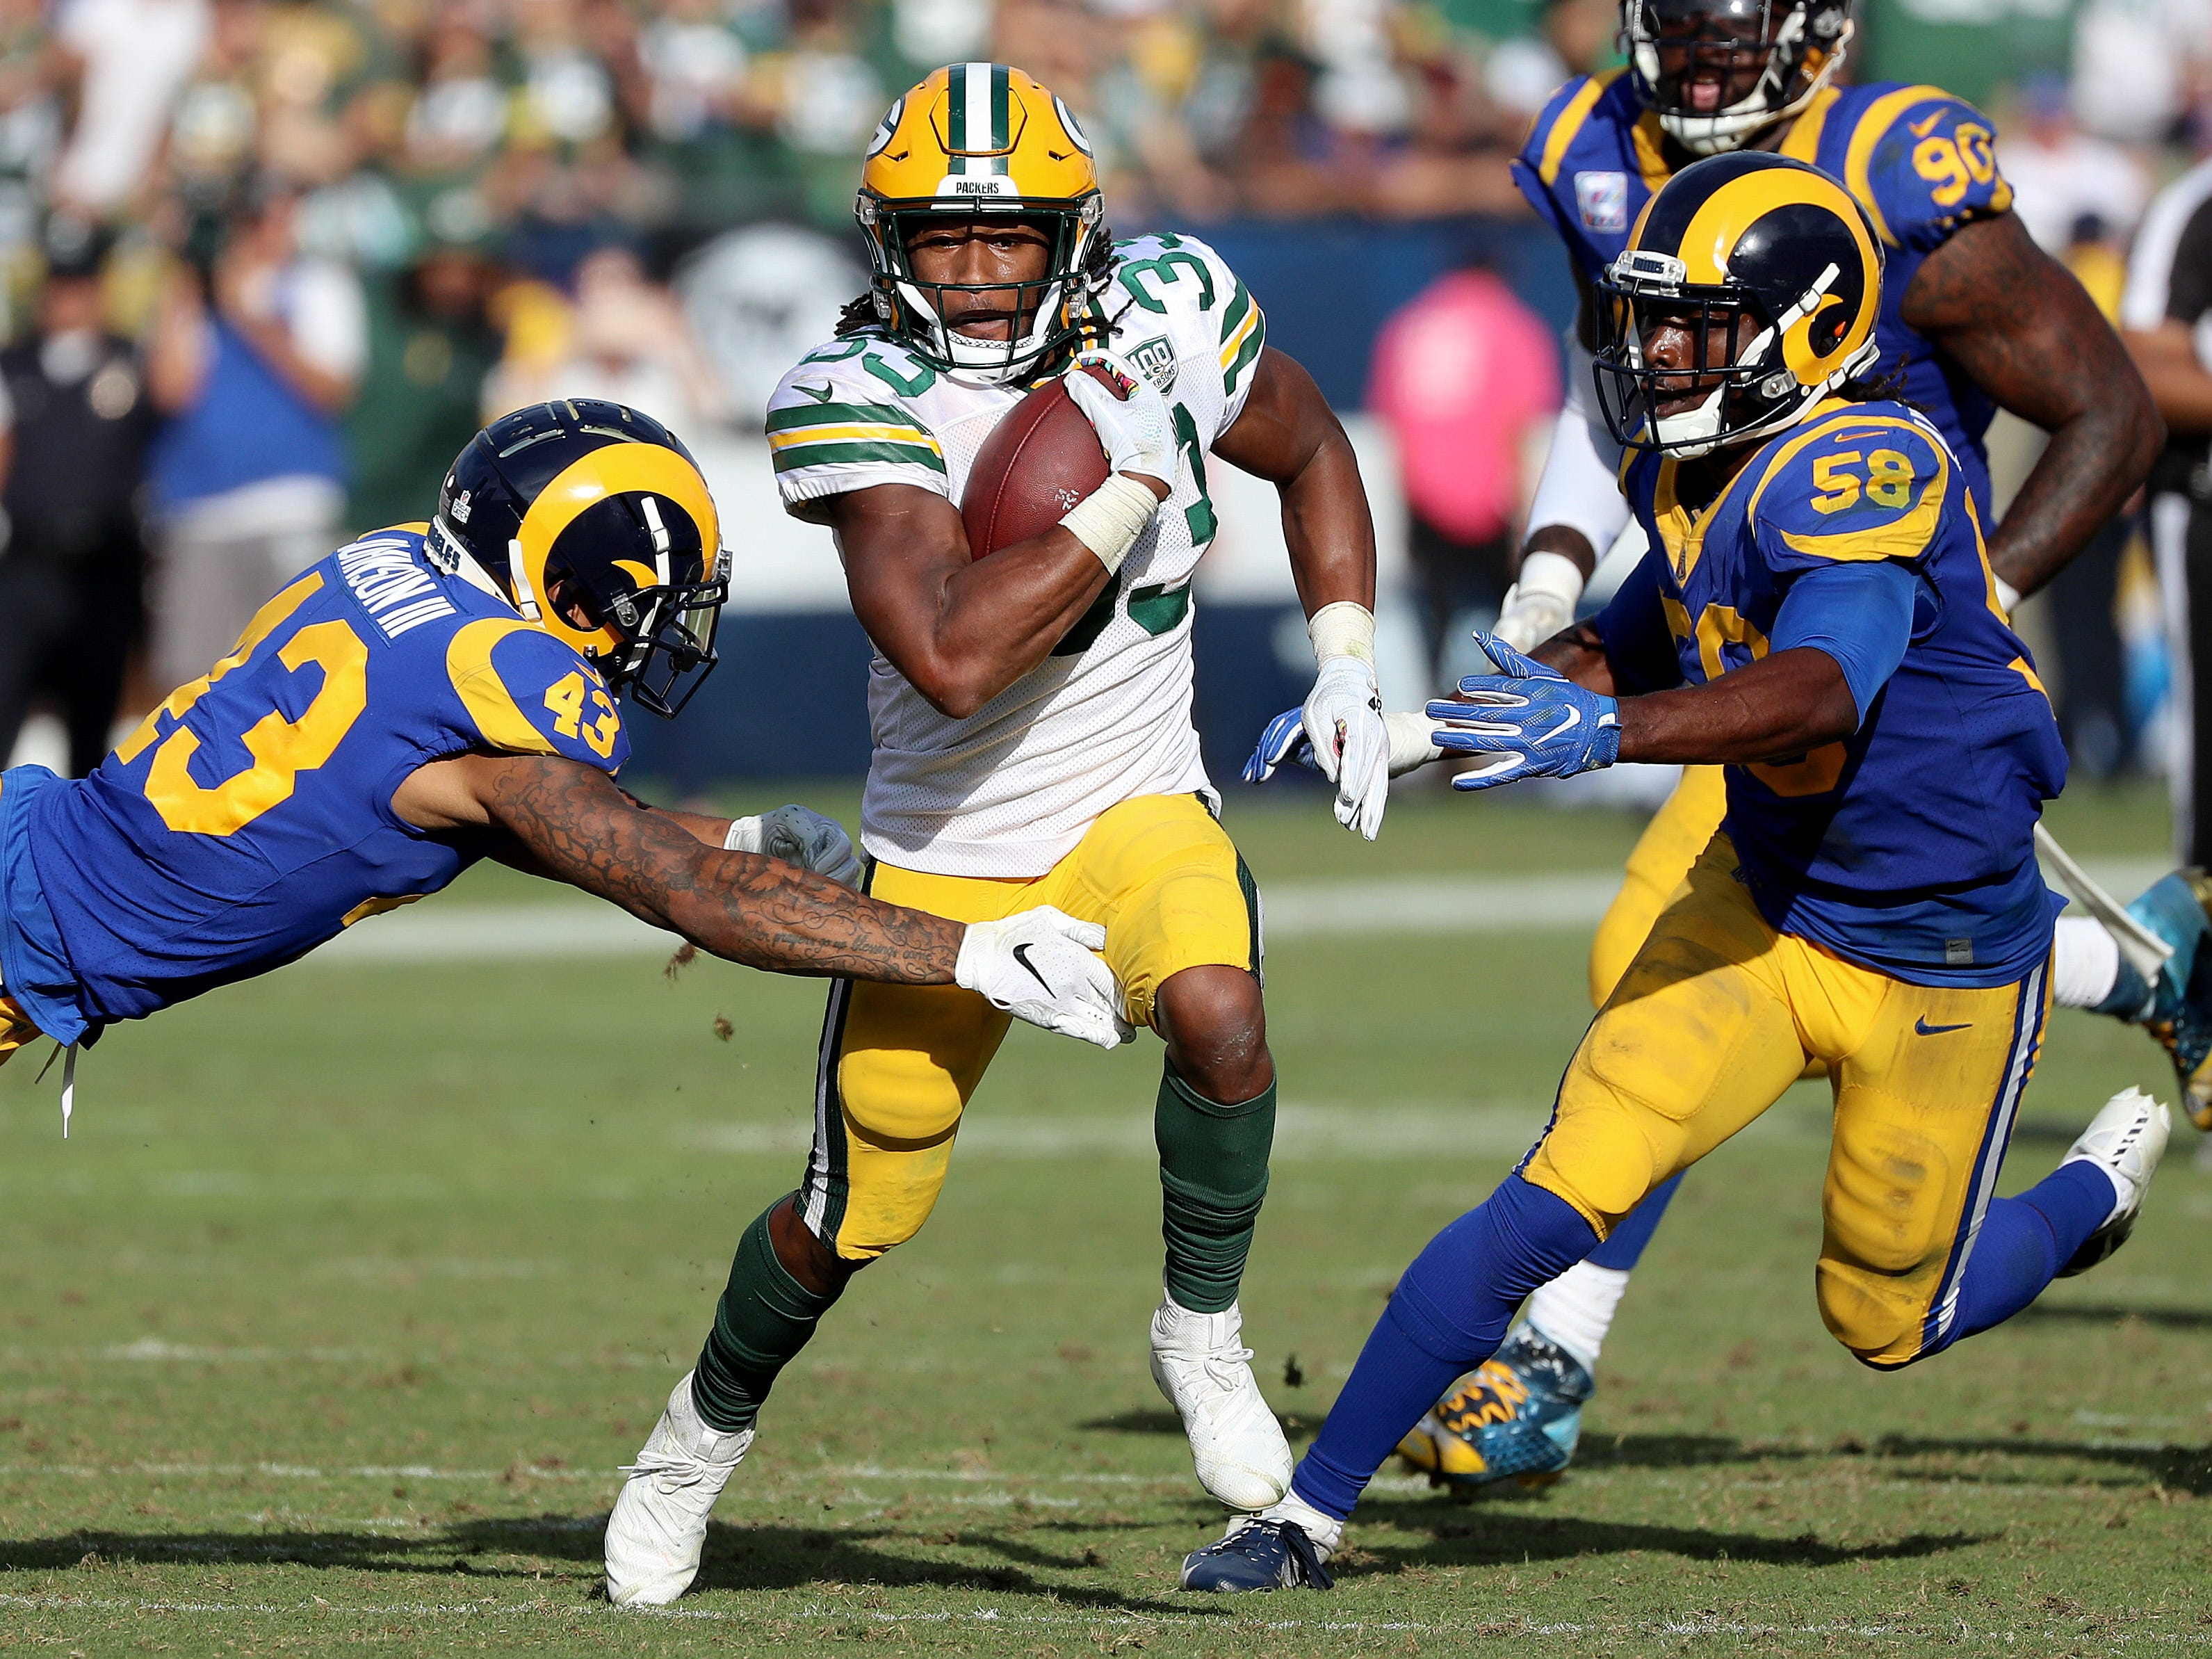 Green Bay Packers running back Aaron Jones (33) splits defenders linebacker Cory Littleton (58) and strong safety John Johnson (43) on a long touchdown run against the LA Rams Sunday, October 28, 2018 at the Memorial Coliseum in Los Angeles.